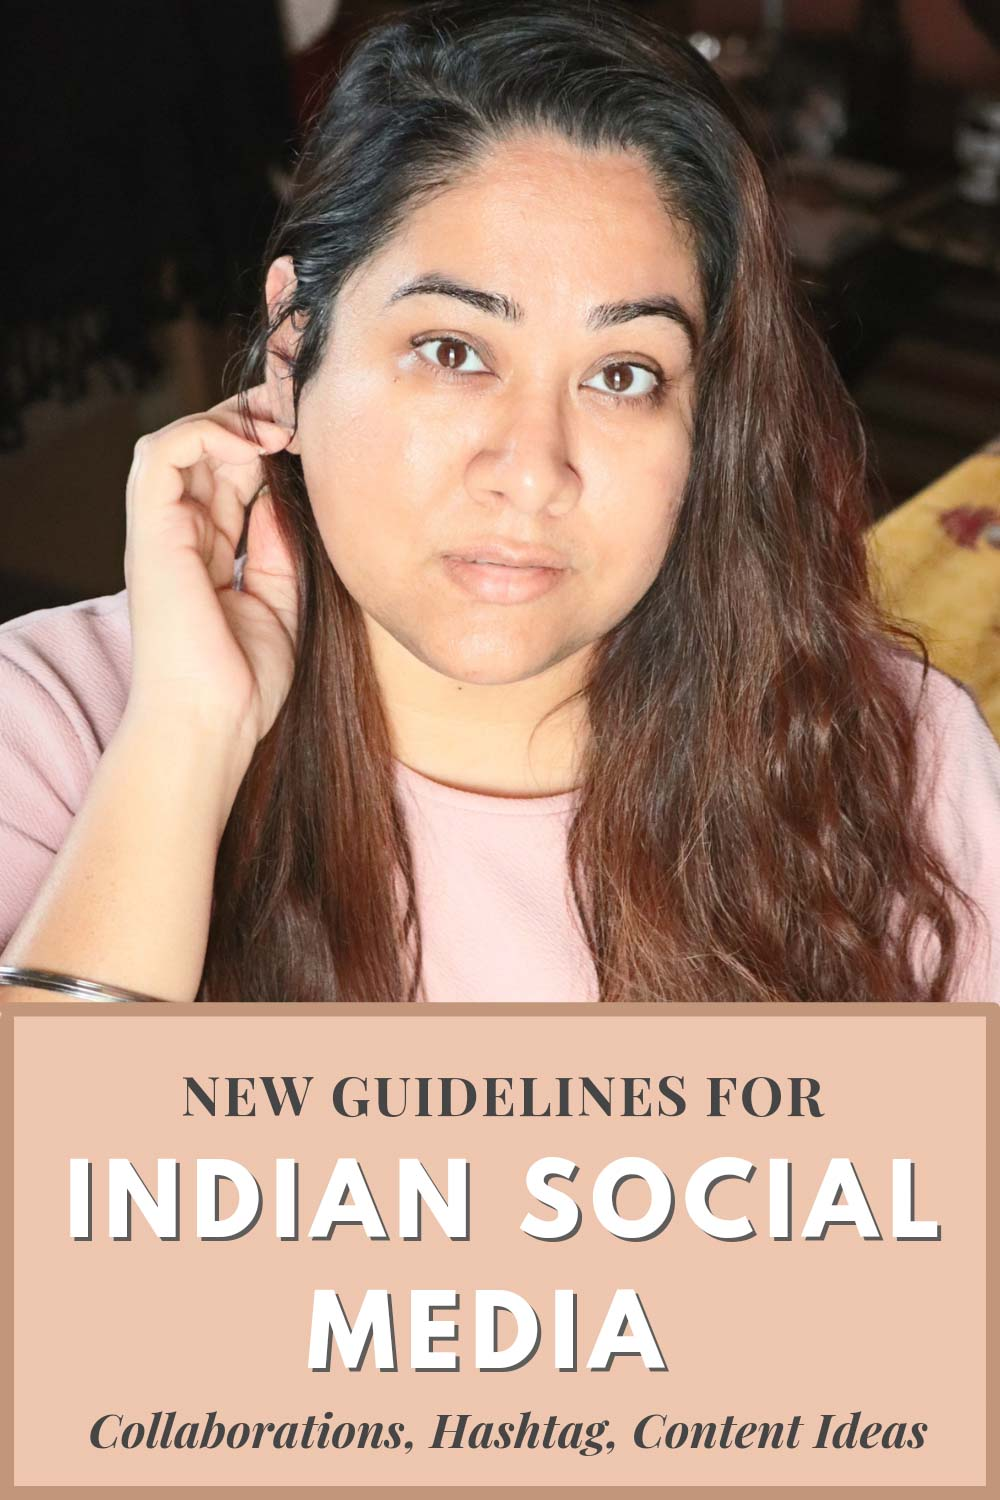 New Guidelines for Indian Social Media